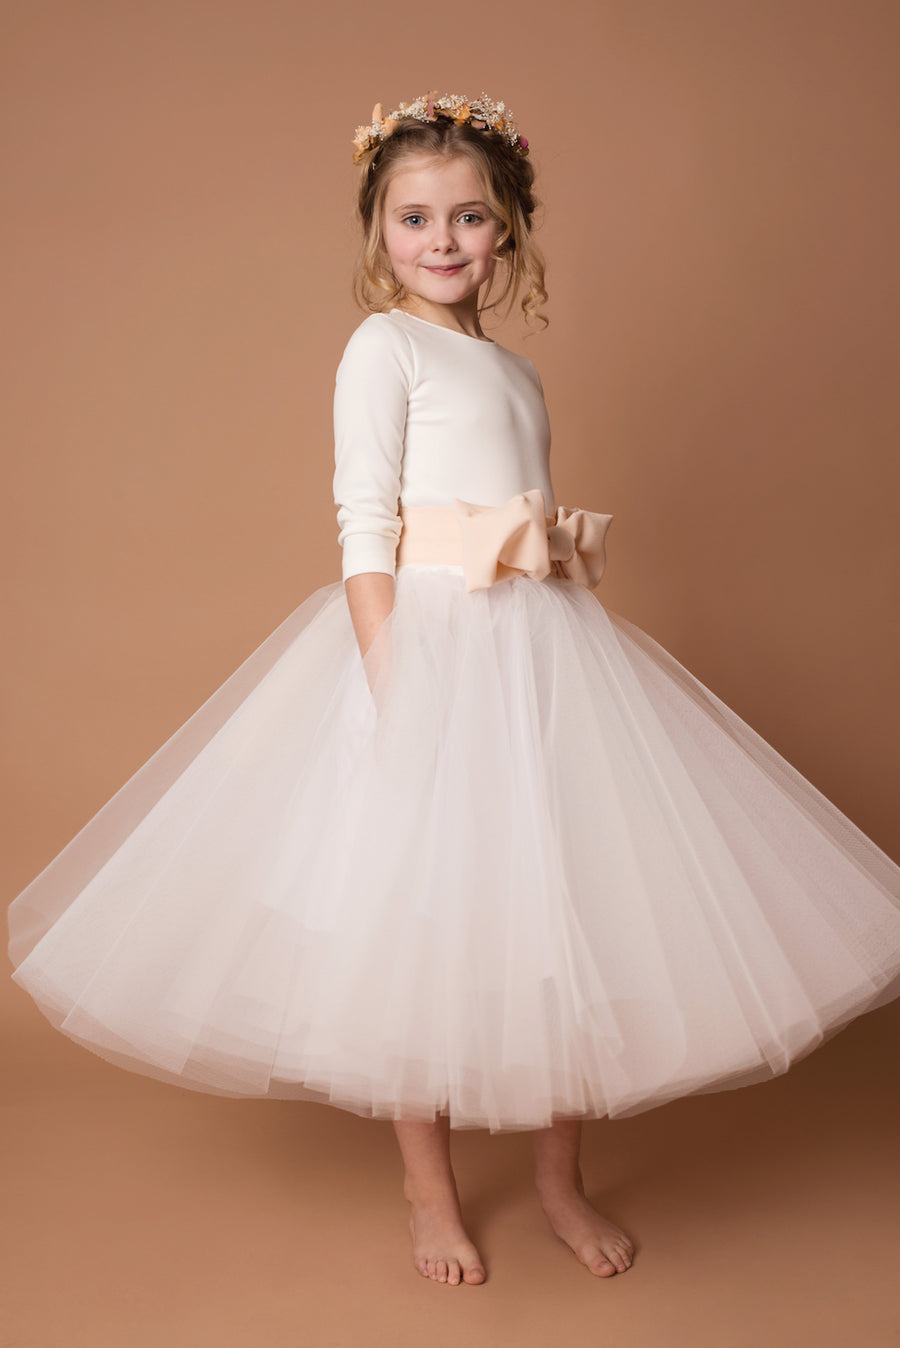 The Anise Flowergirl Dress with Bow Belt